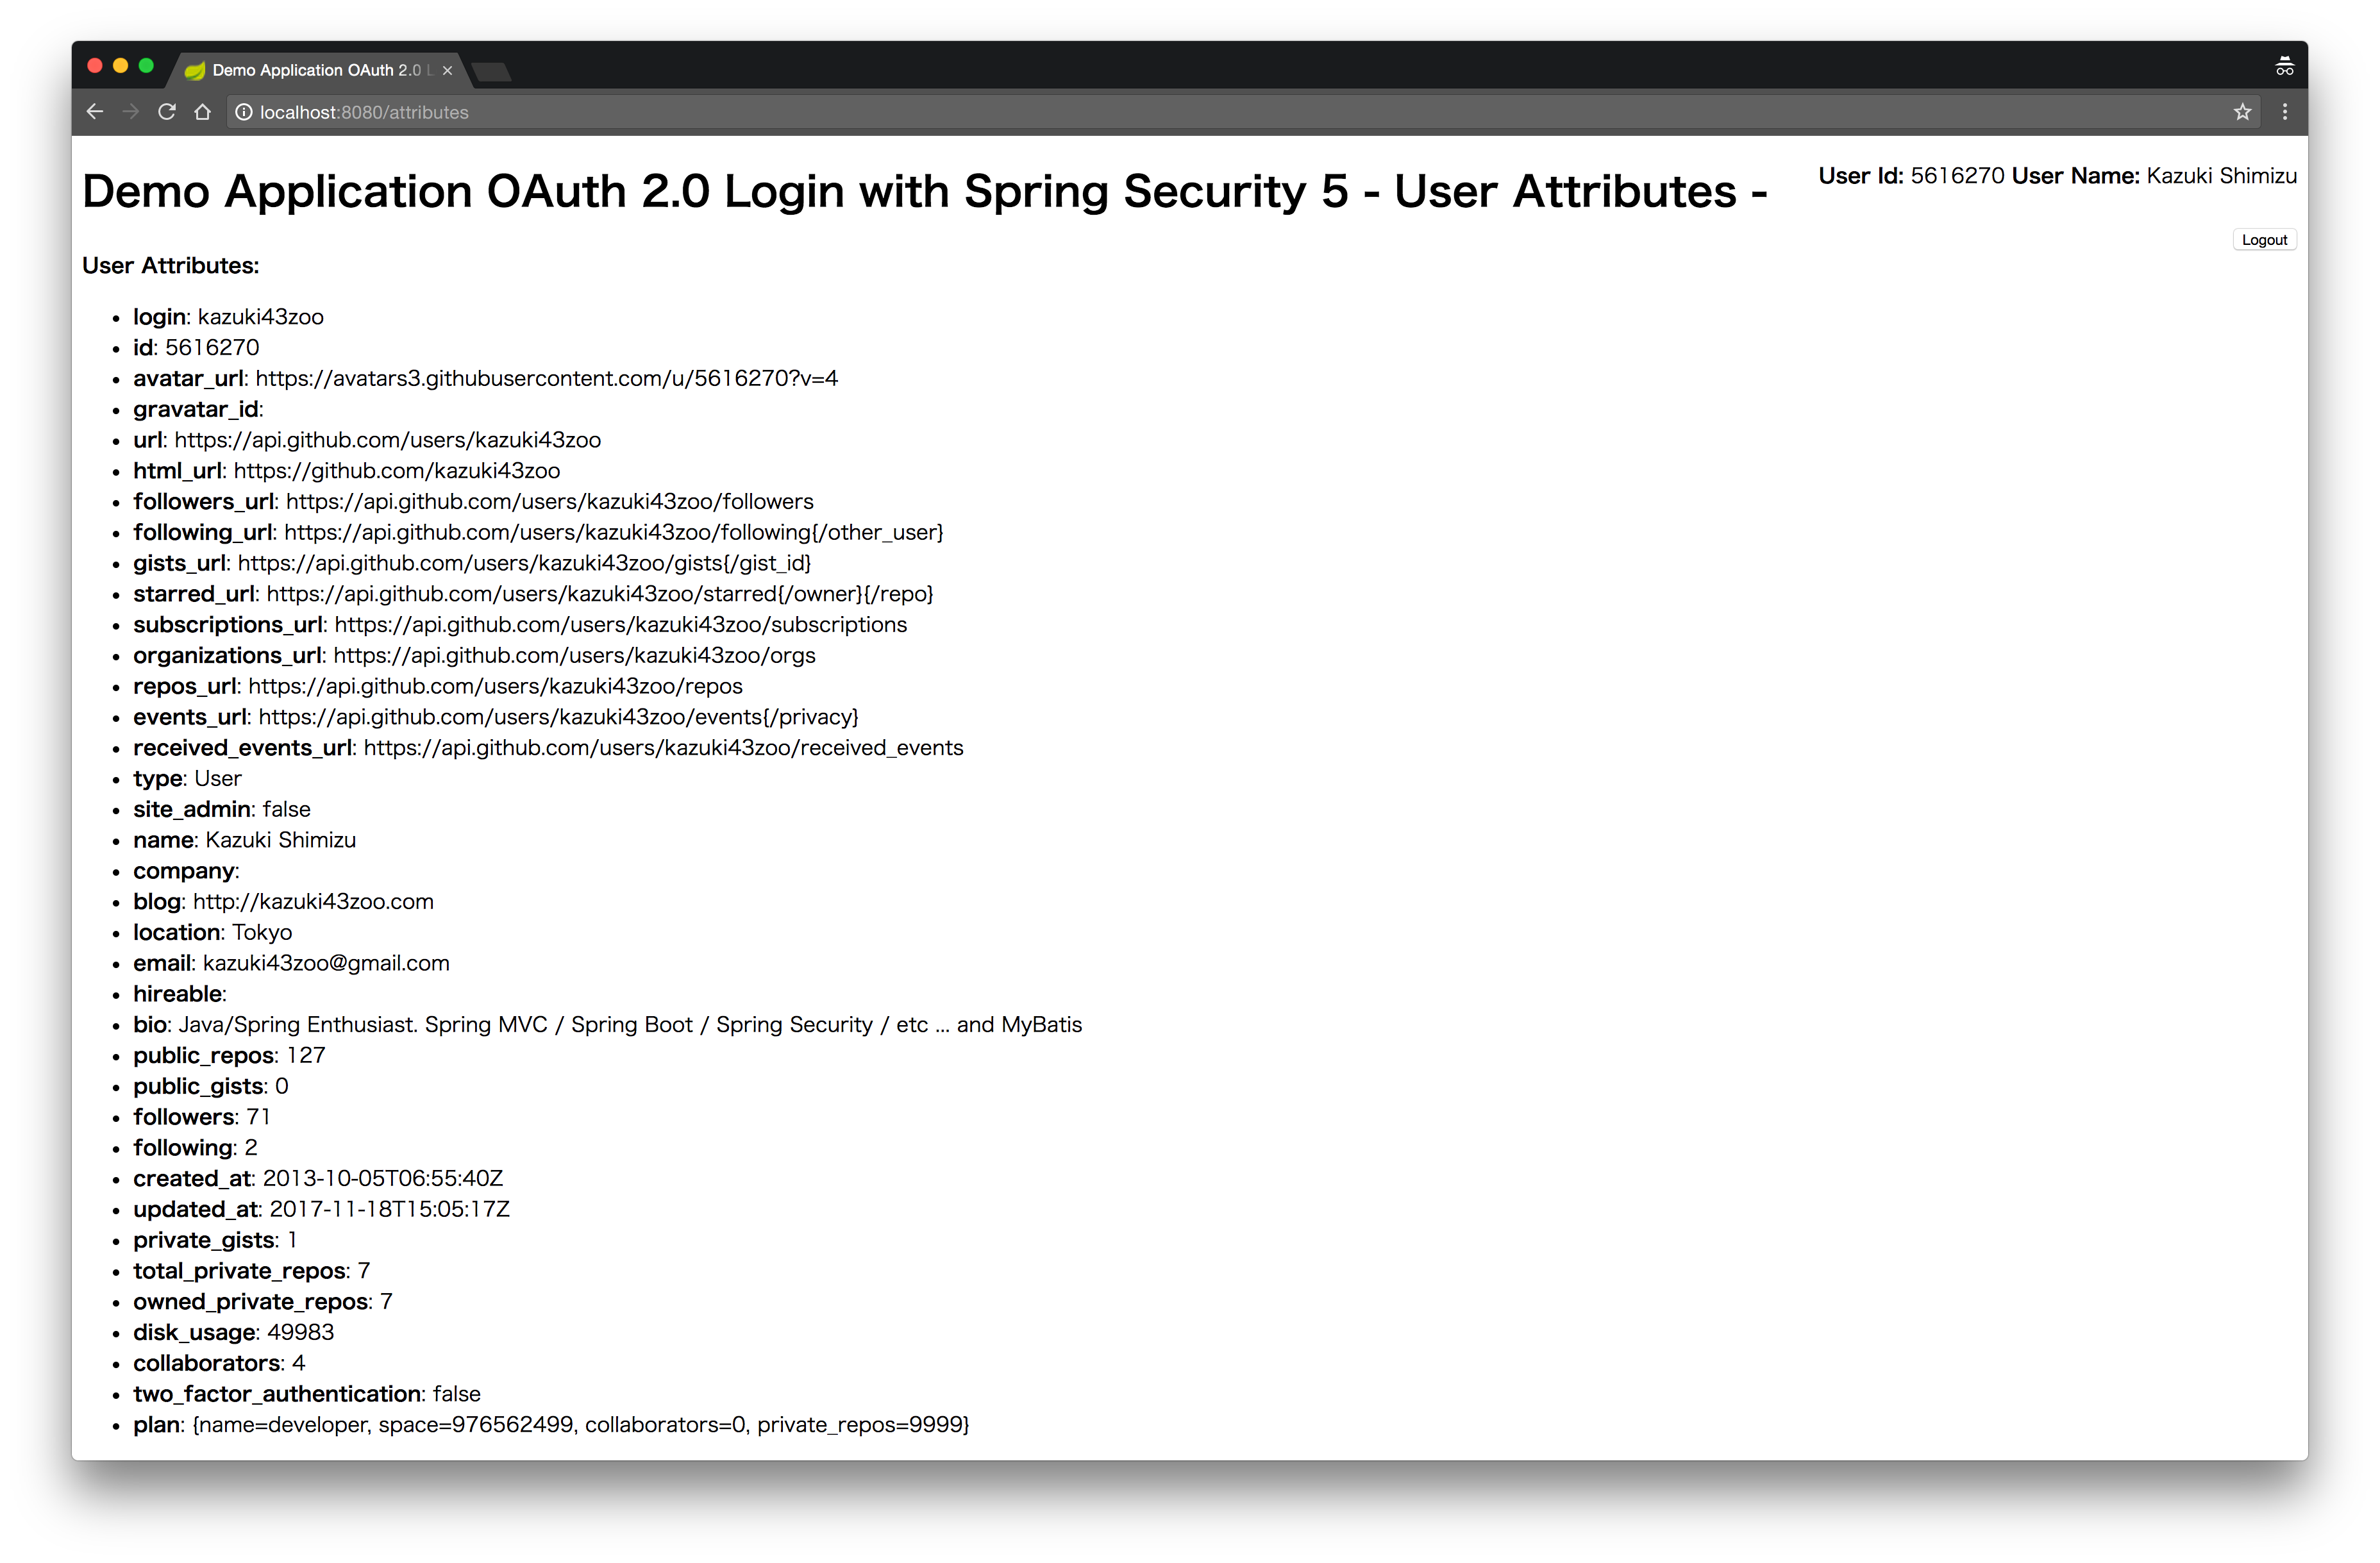 oauth2-attributes-login-page.png